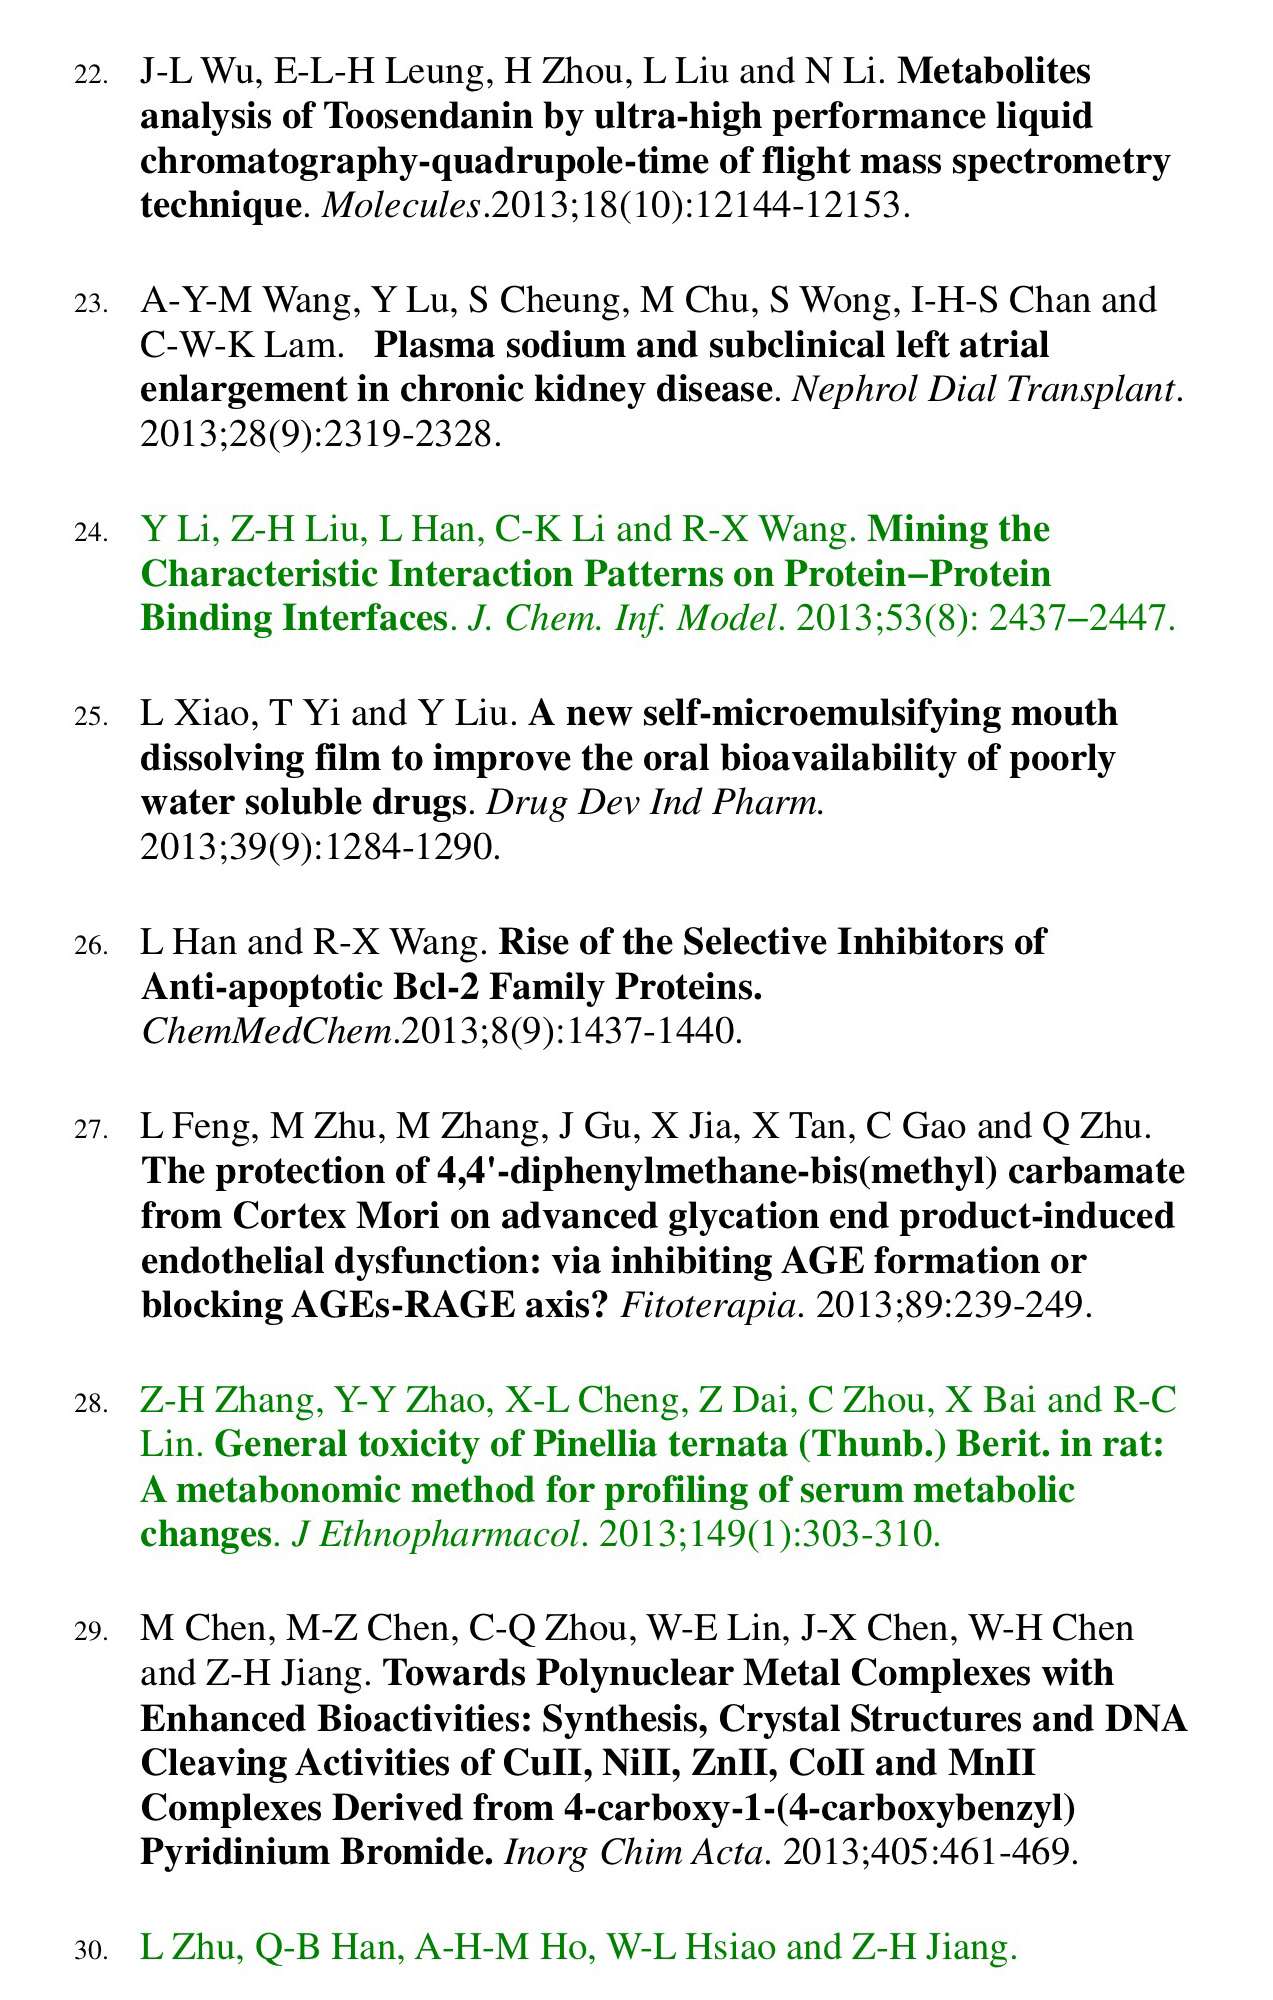 Published papers 2013